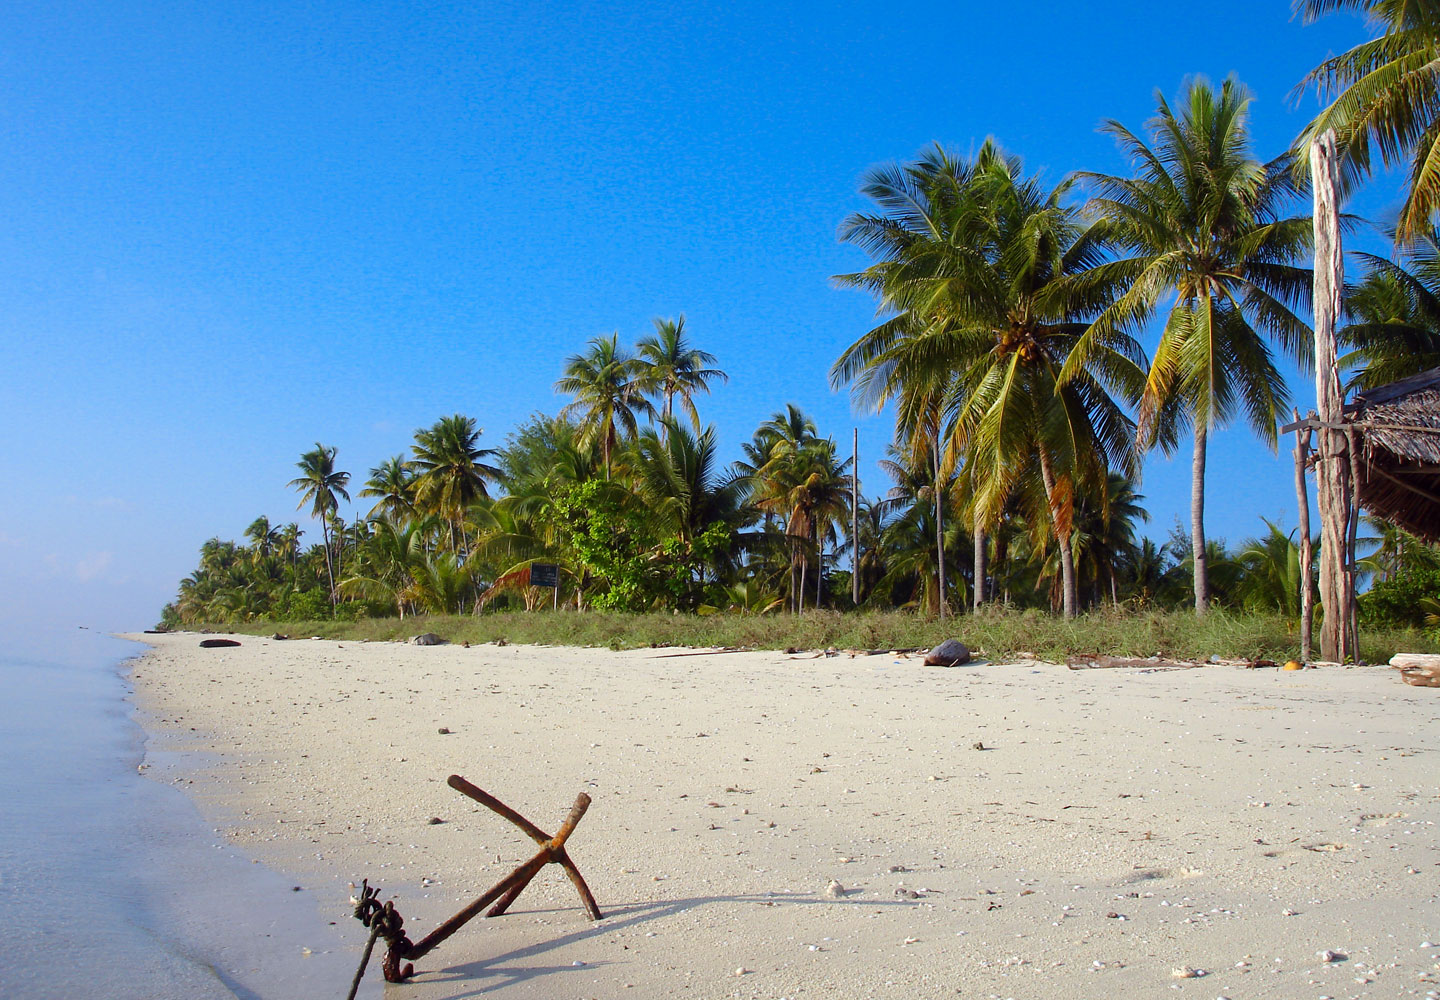 Enjoy the Tranquility at Hoga Island Beach